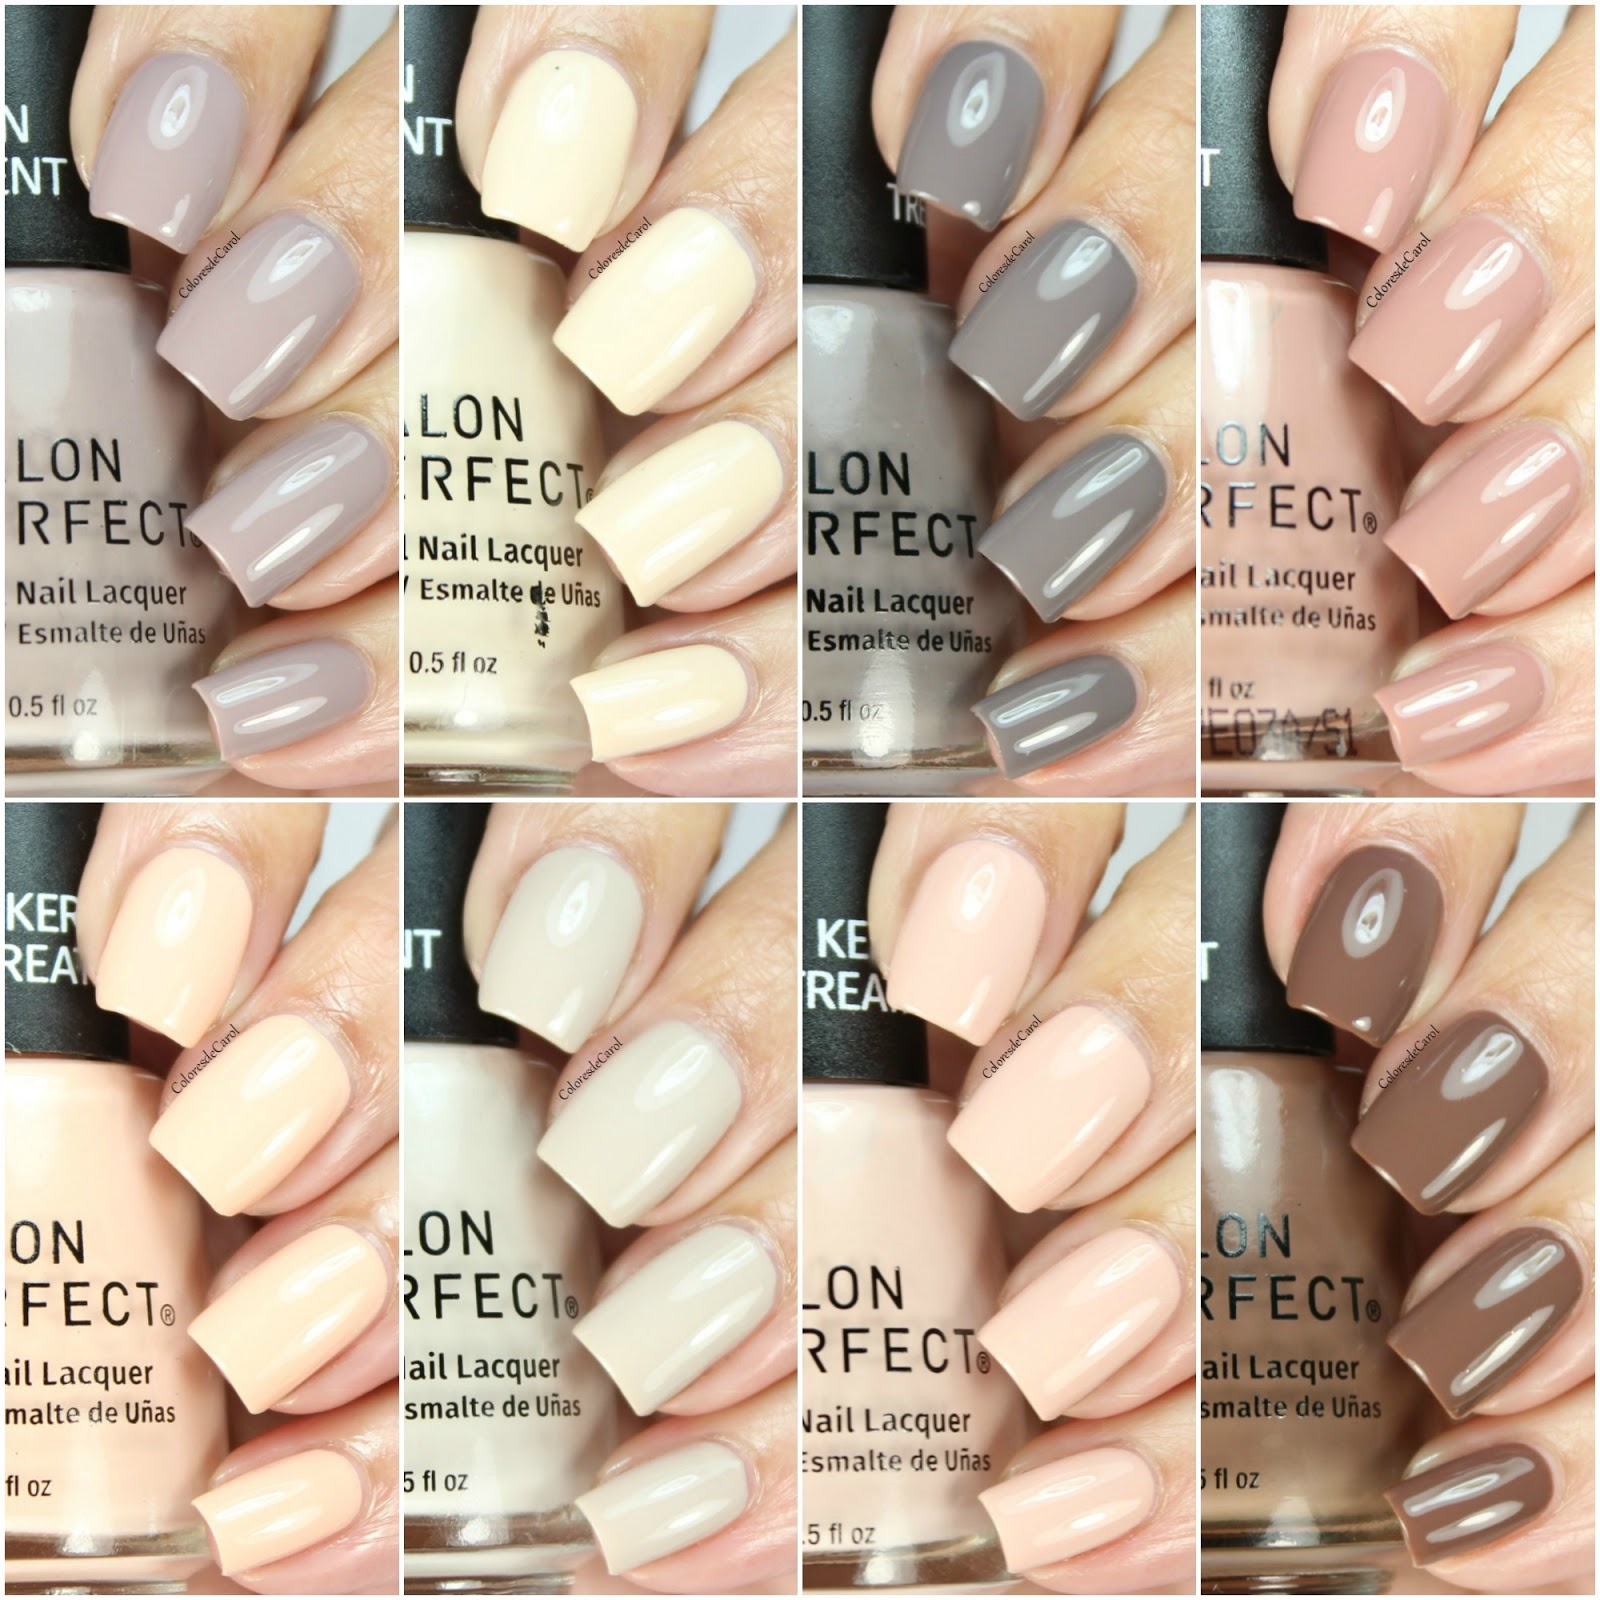 Colores de Carol: Salon Perfect Get Naked with Naked Nutrients